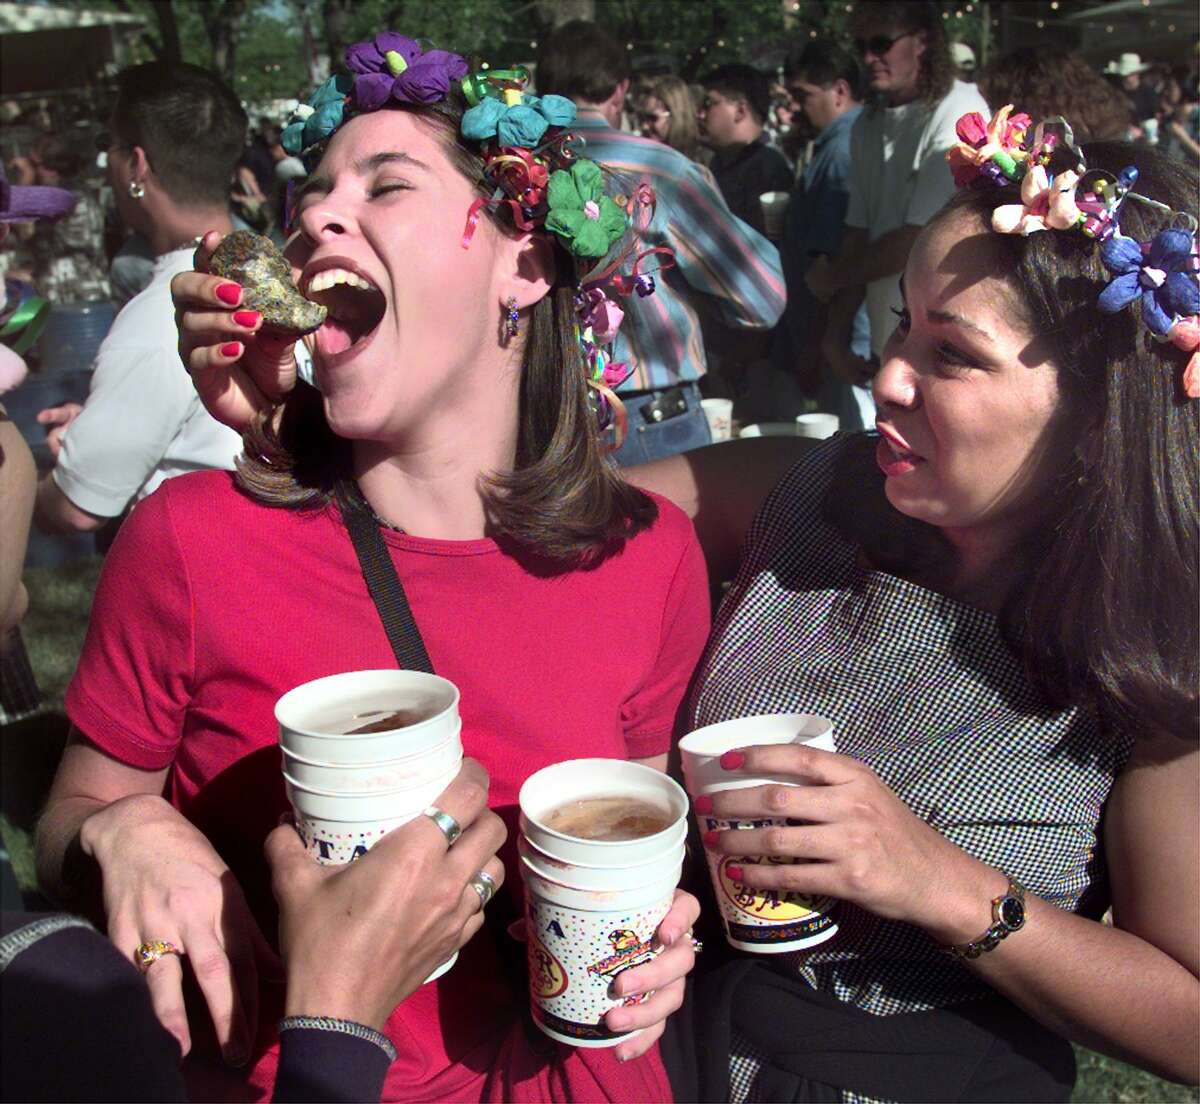 Save your cups: Wash down all that food with a cold beer - or two. Don't be surprised to see party-goers at the popular A Night in Old San Antonio event carrying stacks of empty souvenir beer cups with pride. A Fiesta-goer gets an oyster crammed in her face as she holds a stack of beer cups at the St. Mary's Oyster Bake in 1999.